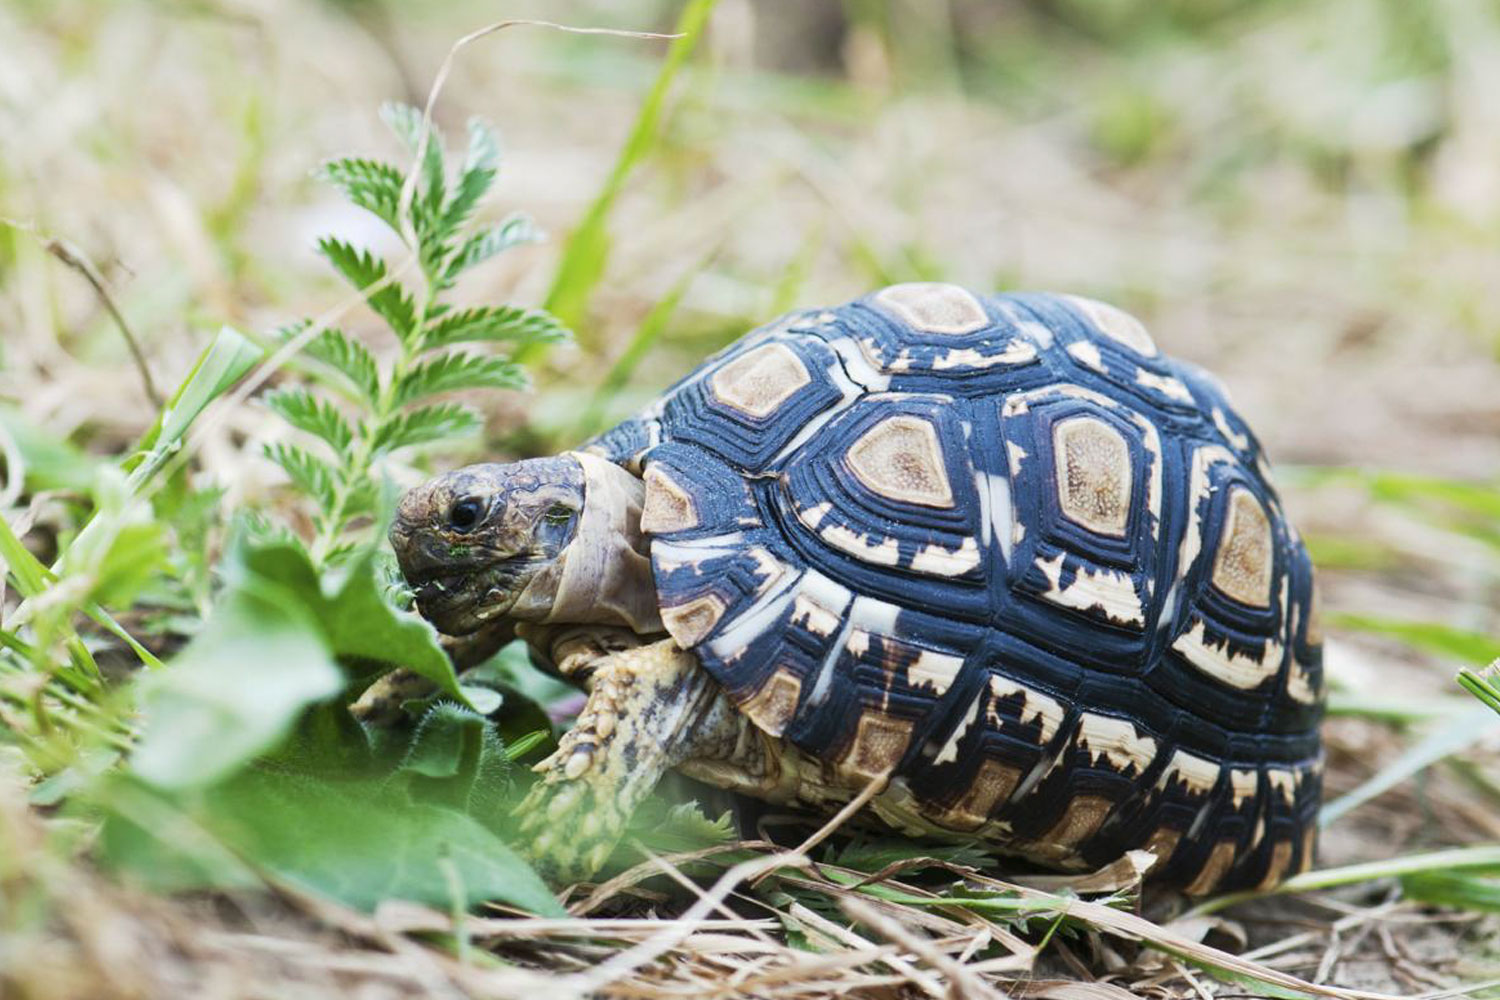 Care Sheets - Learn how to care for your turtle or tortoise